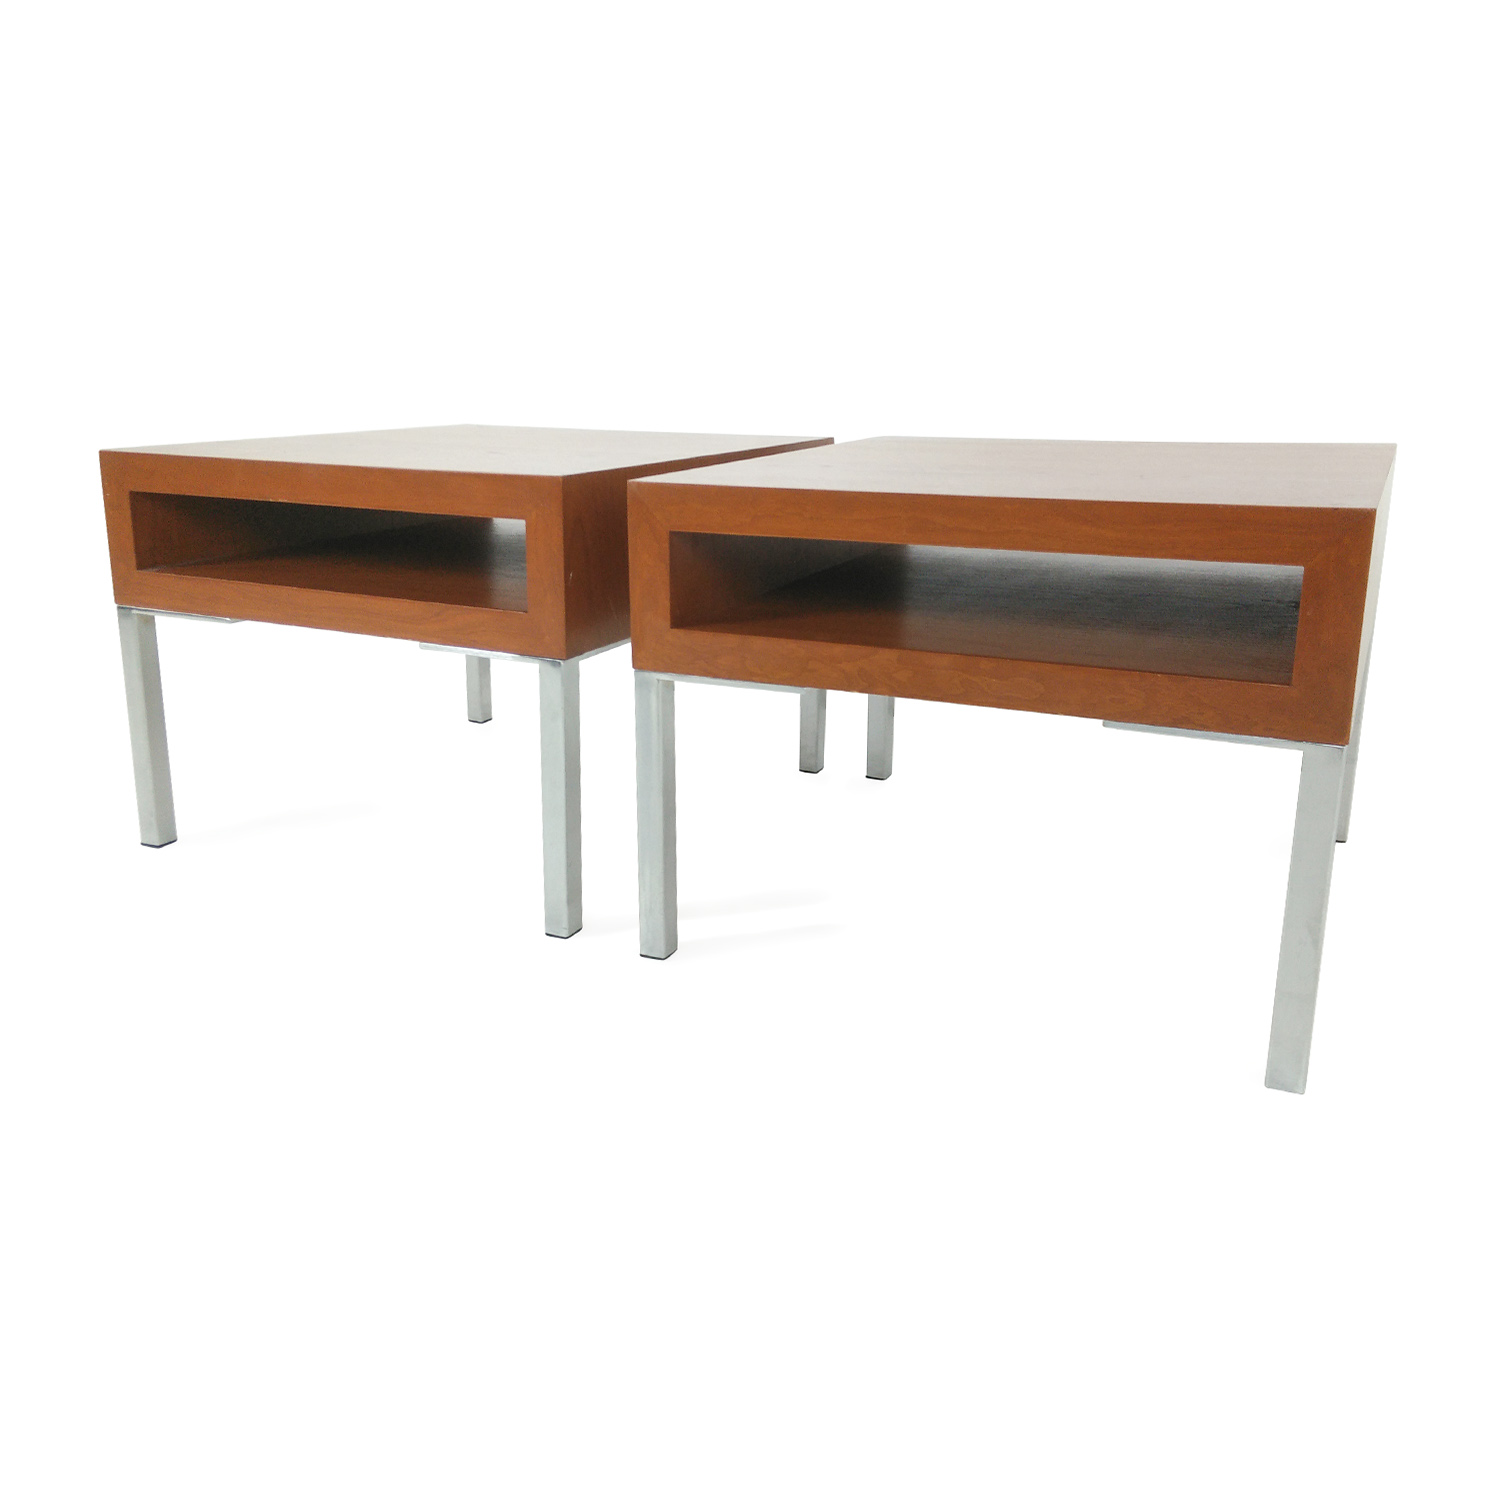 Used Coffee Tables And End Tables Grey Coffee Table And End Tables Used Coffee Tables End